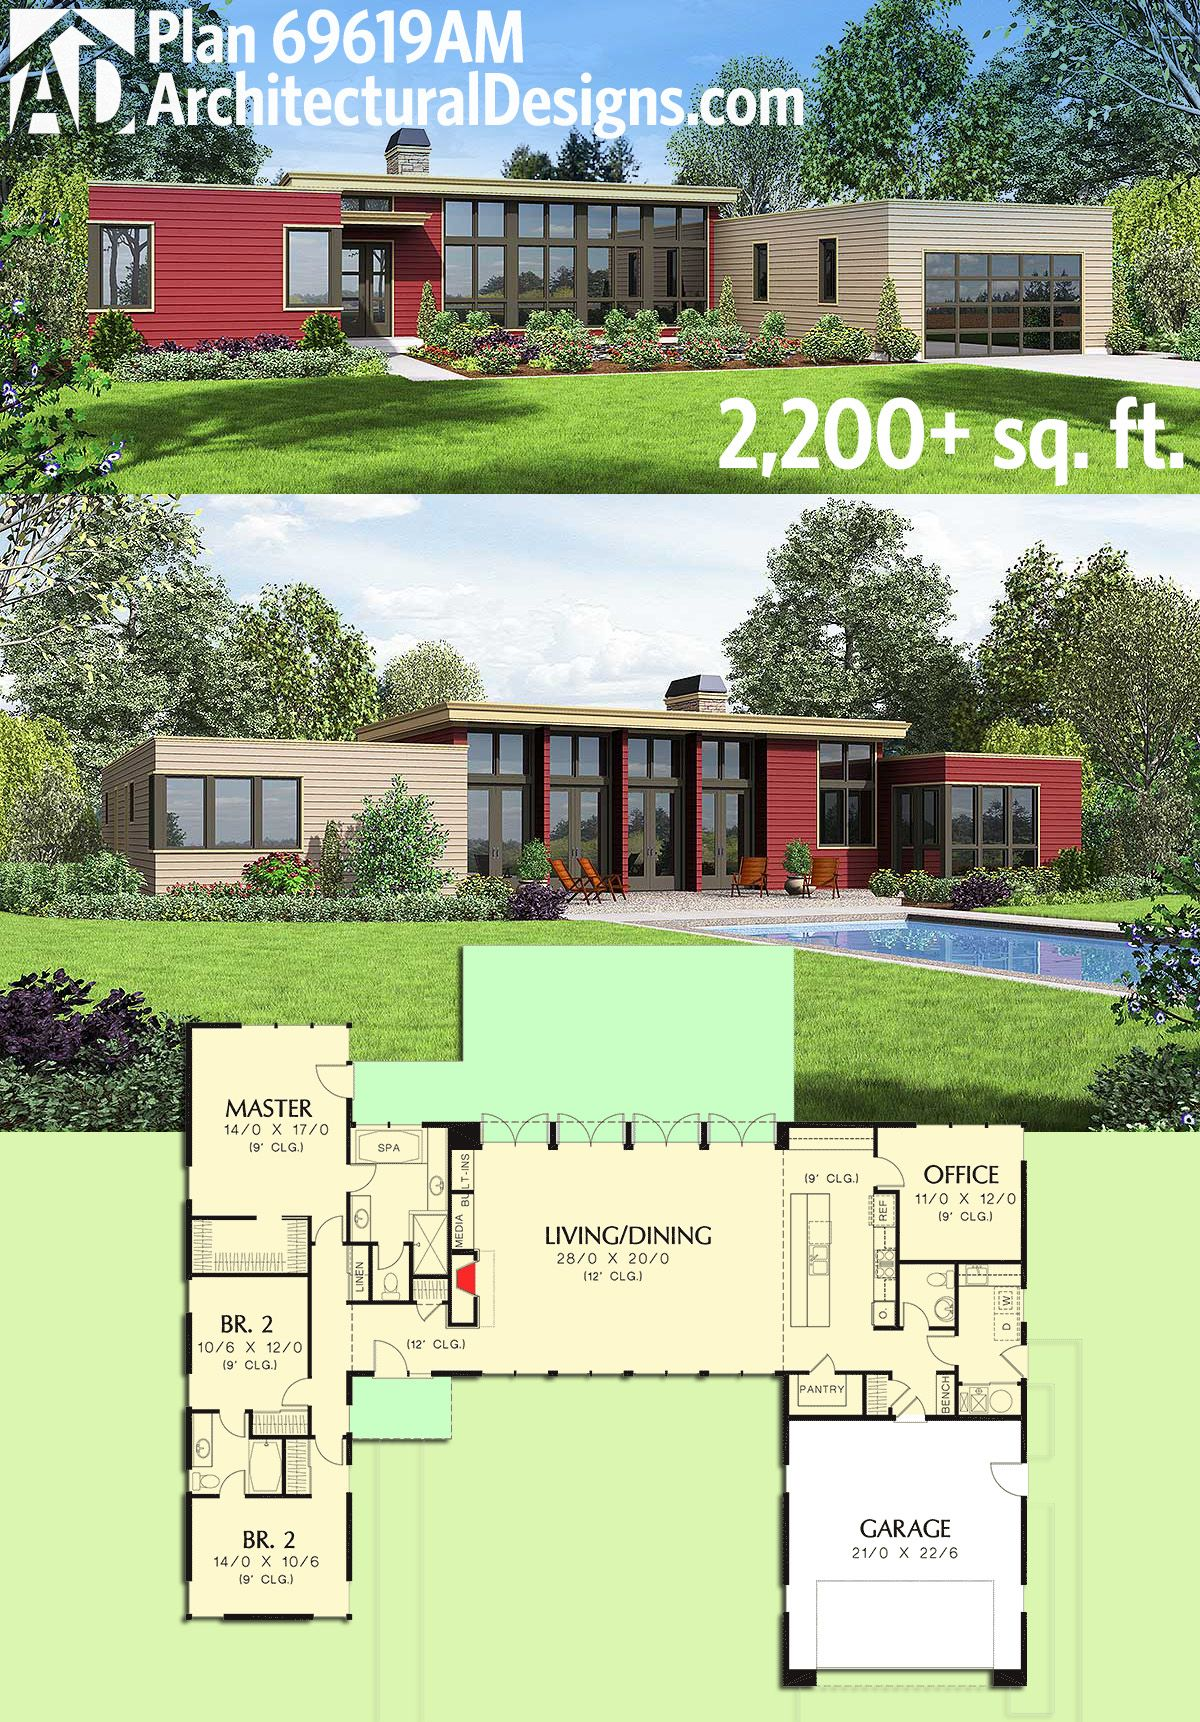 plan 69619am 3 bed modern house plan with open concept layout